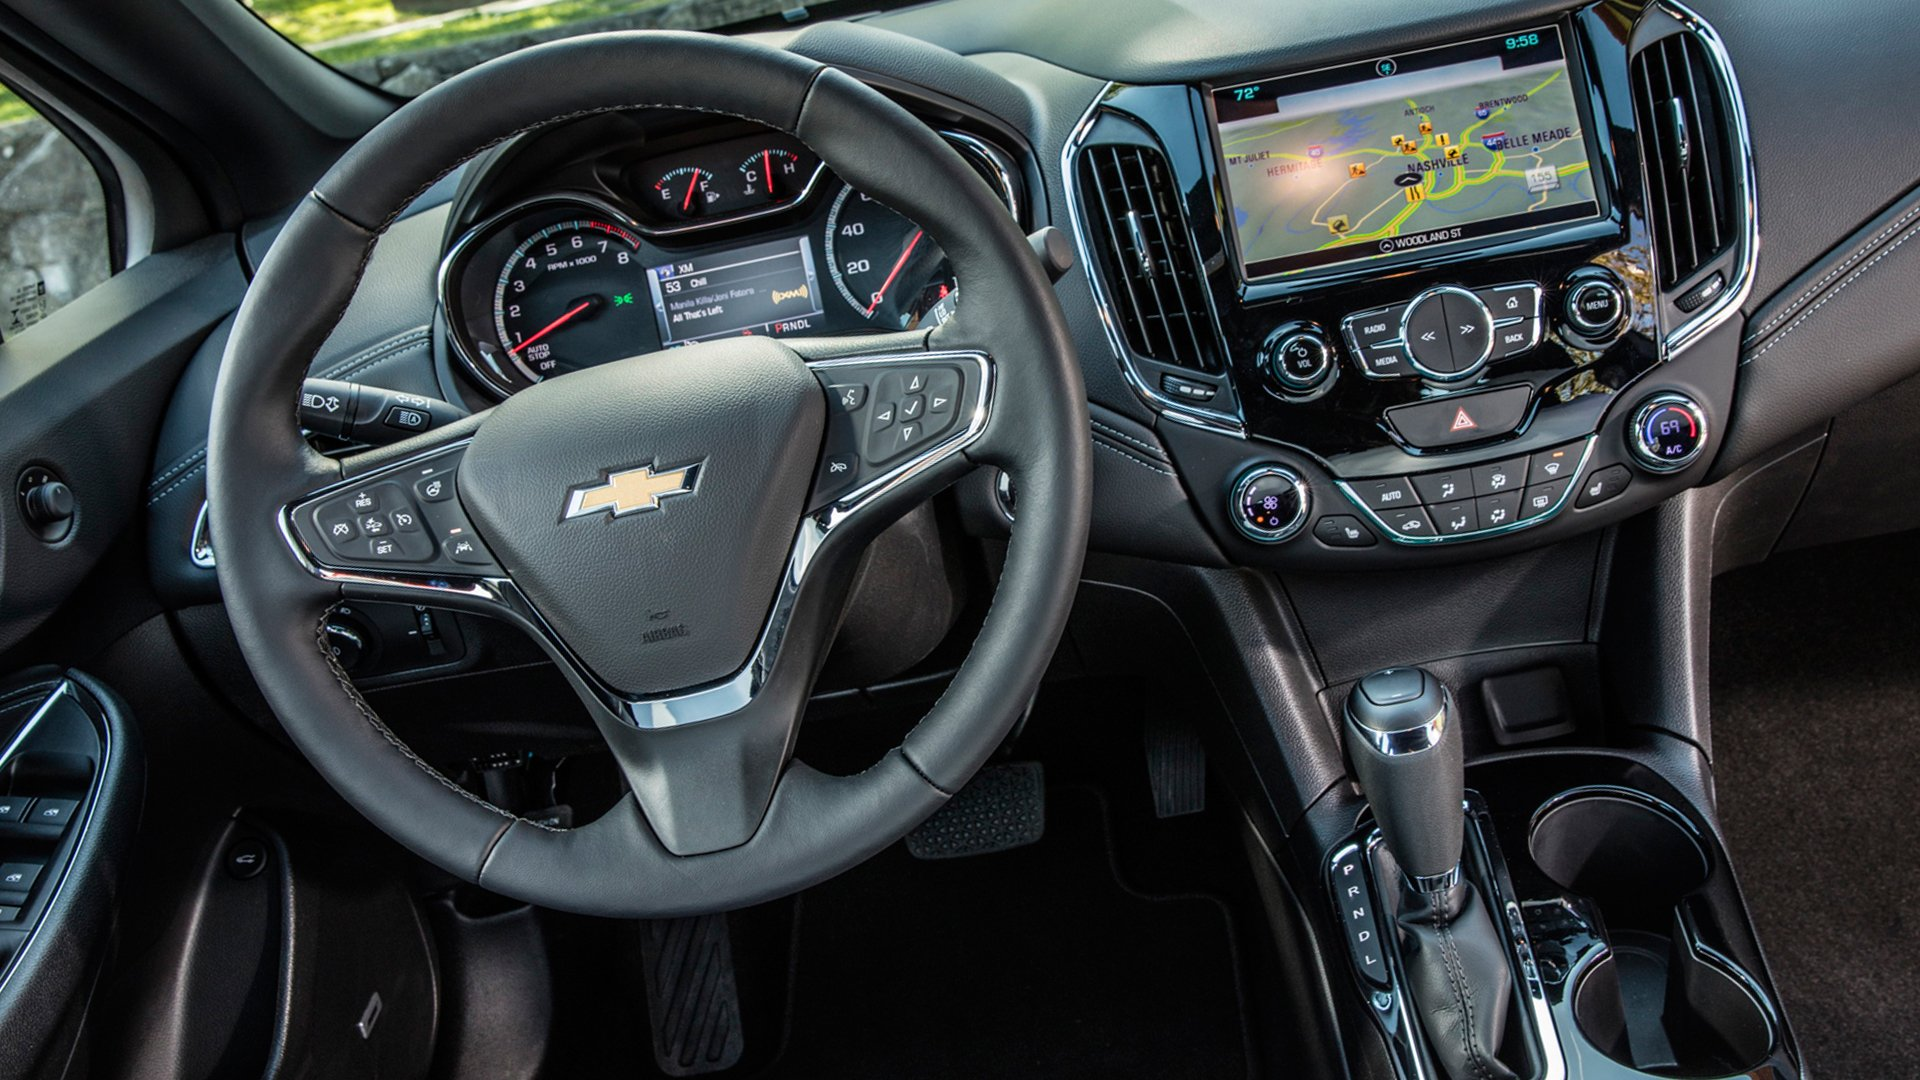 New 2019 Chevrolet Cruze Interior Design